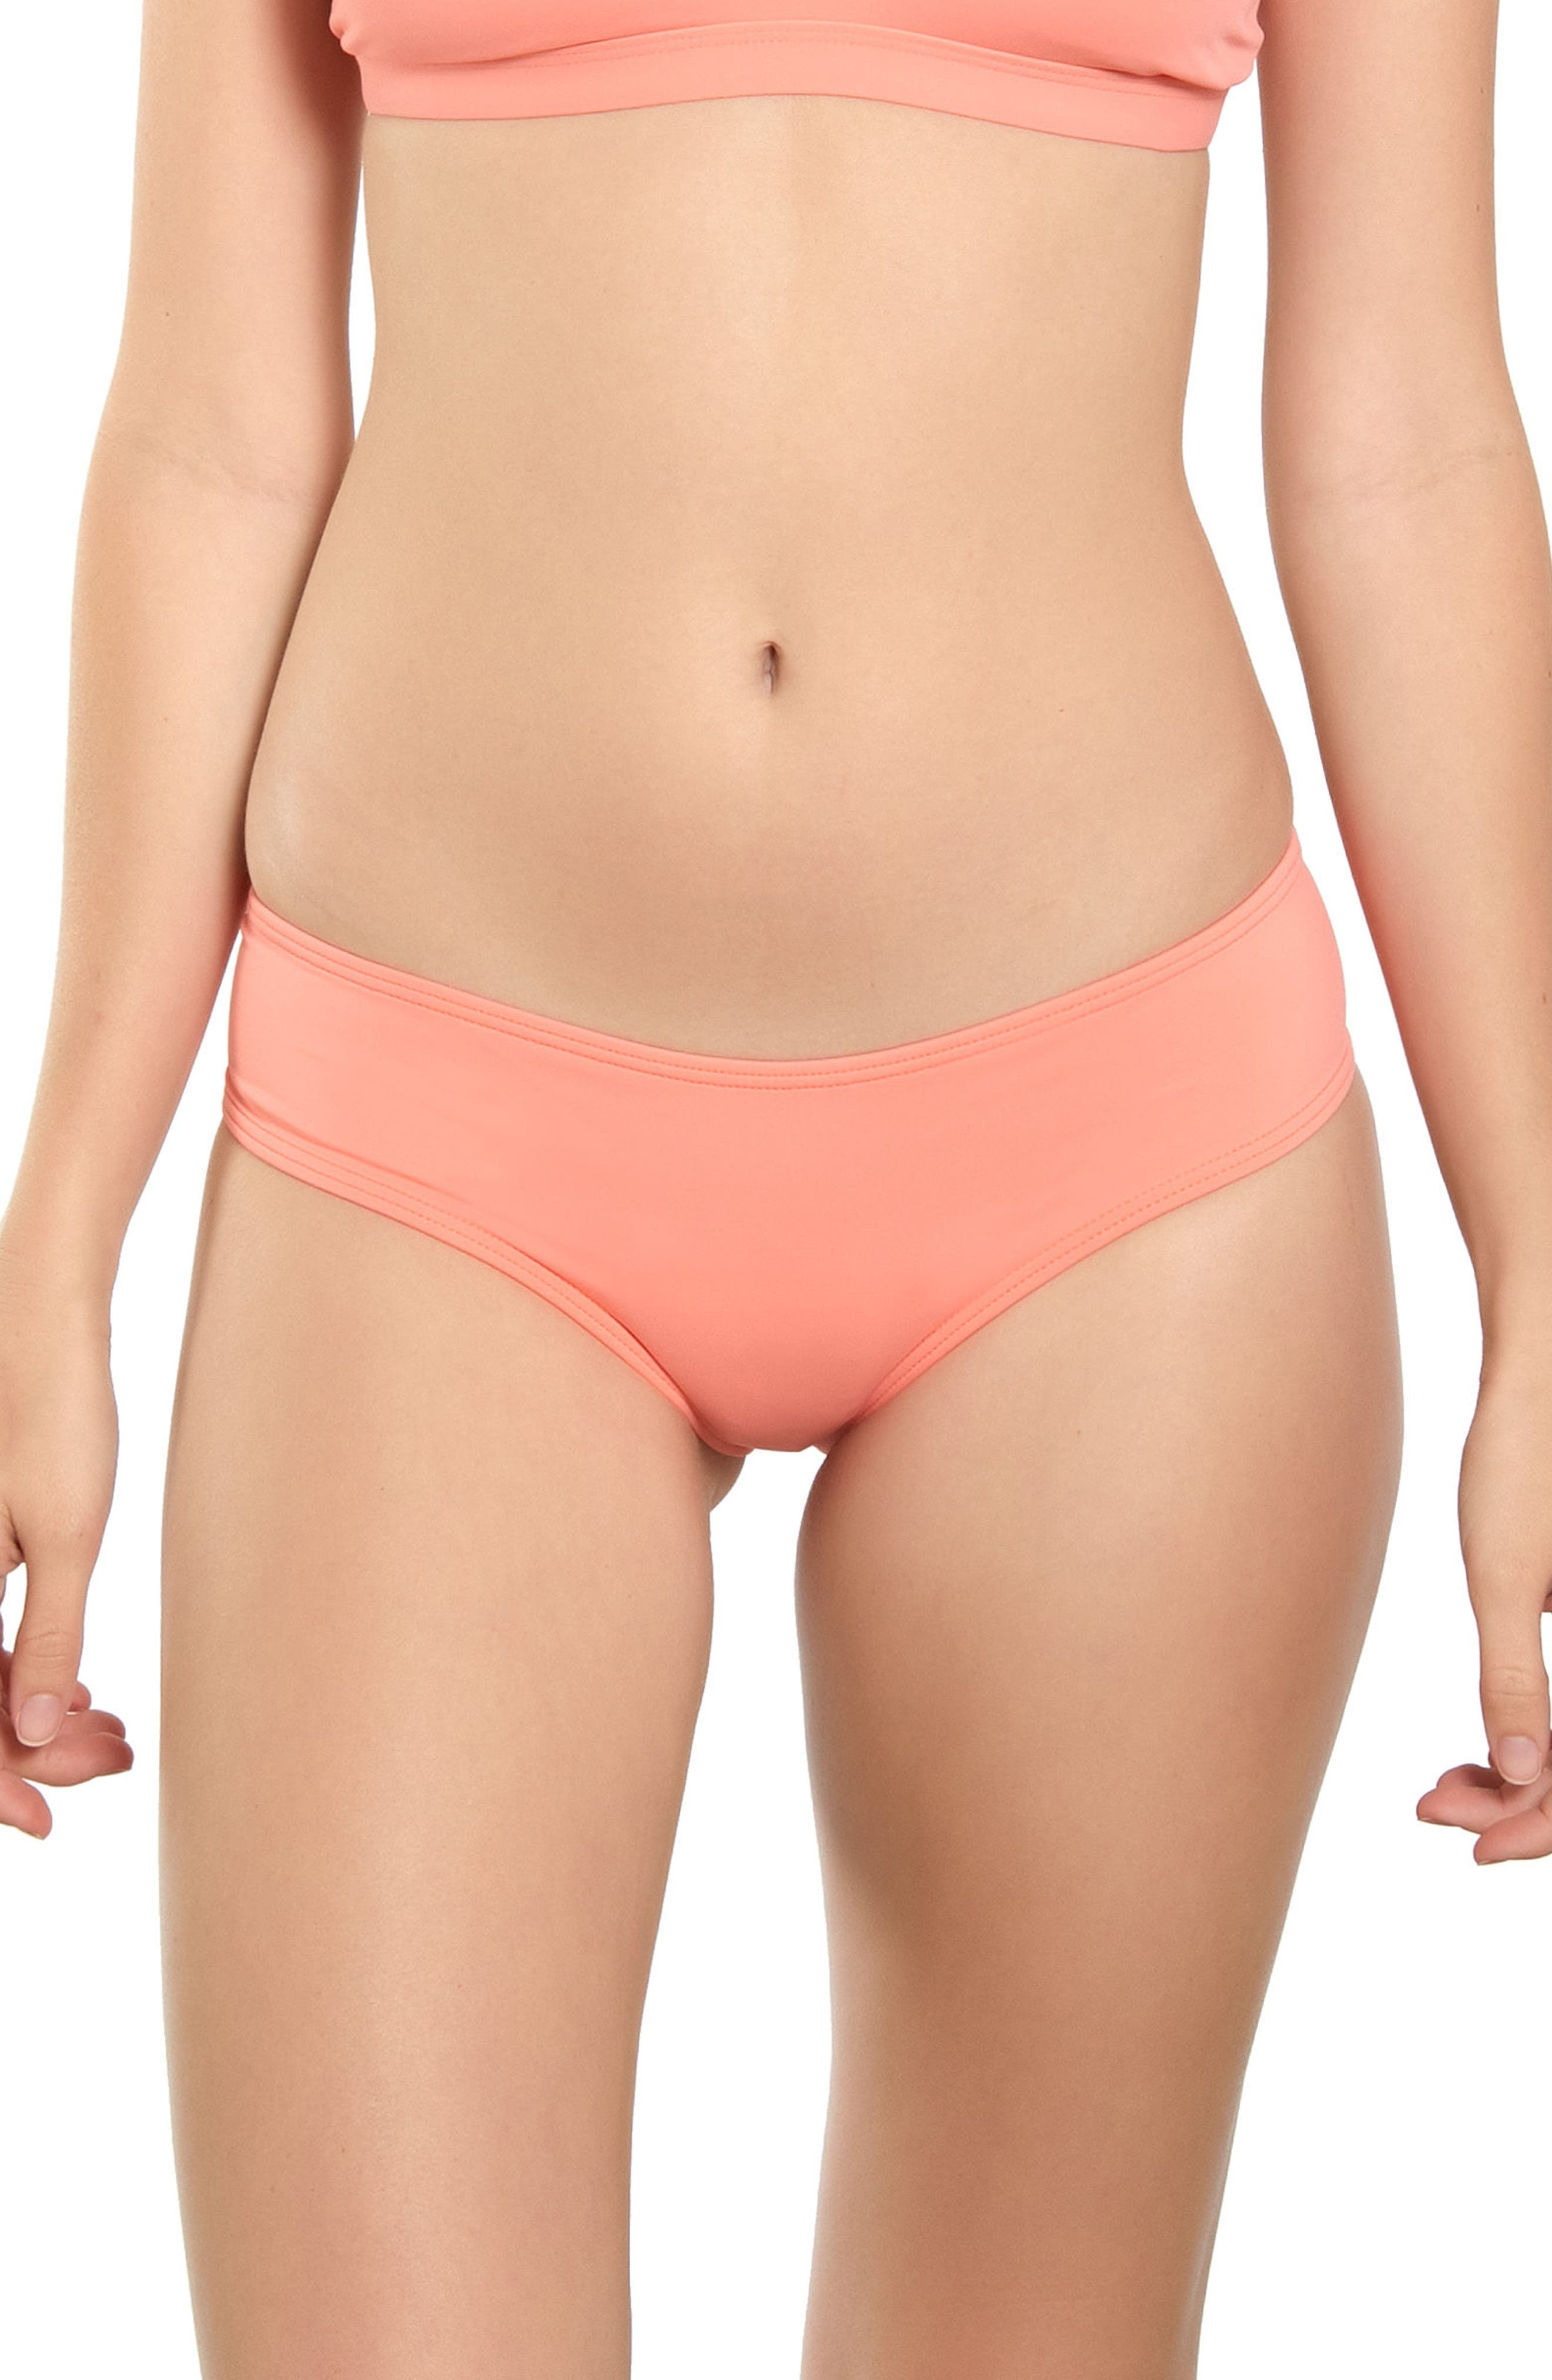 Salt Water Solids Hipster Bikini Bottoms,                             Main thumbnail 1, color,                             Mai Tai